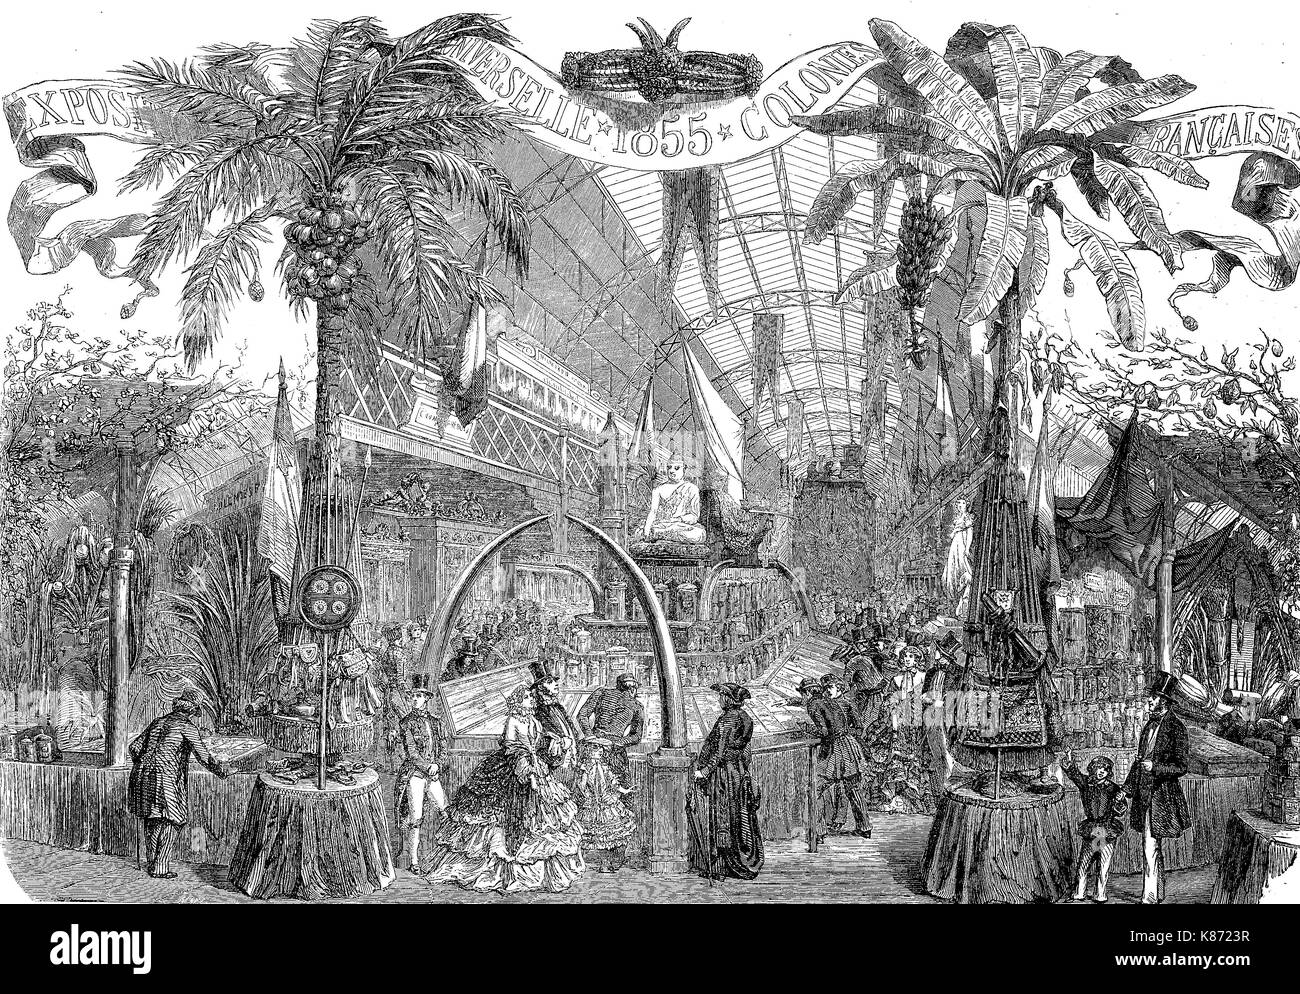 the international exposition 1855, Paris, France, exhibition of the french colonies, Digital improved reproduction - Stock Image